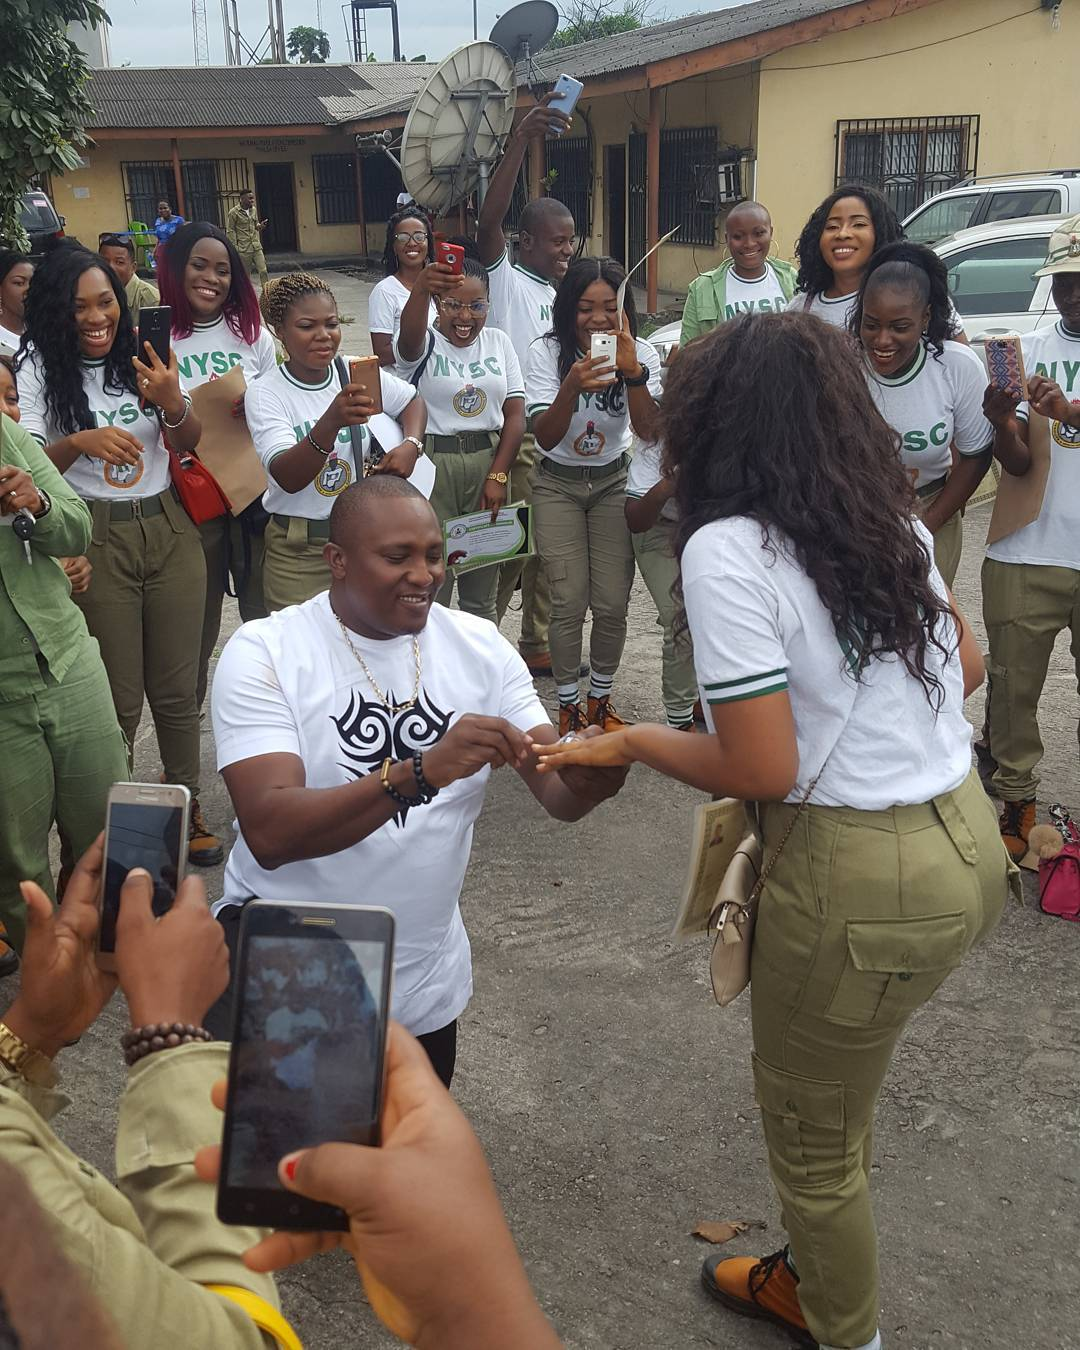 Nigerian Man Bends the Knee to Propose to His NYSC Babe in Port Harcourt (Photos)